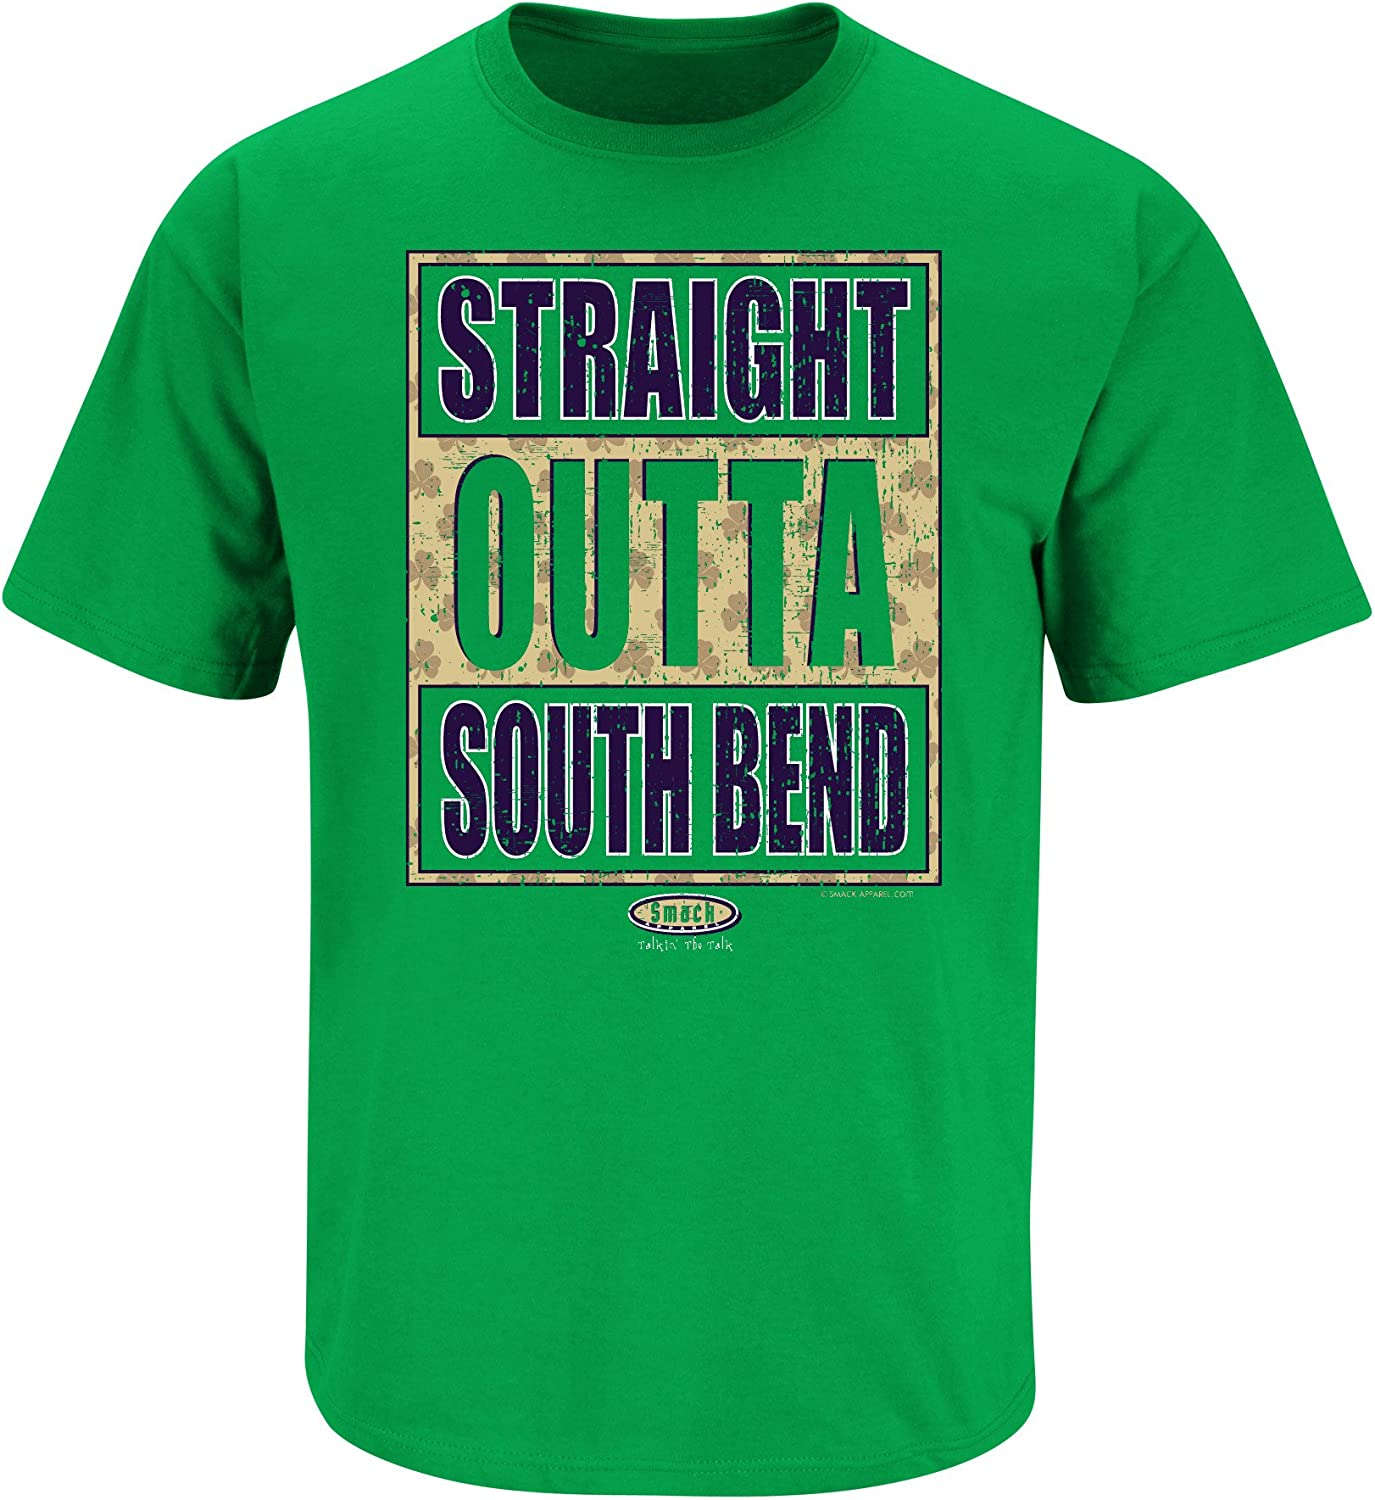 Straight Outta South Bend Sm-5X Smack Apparel Notre Dame Football Fans Green T Shirt